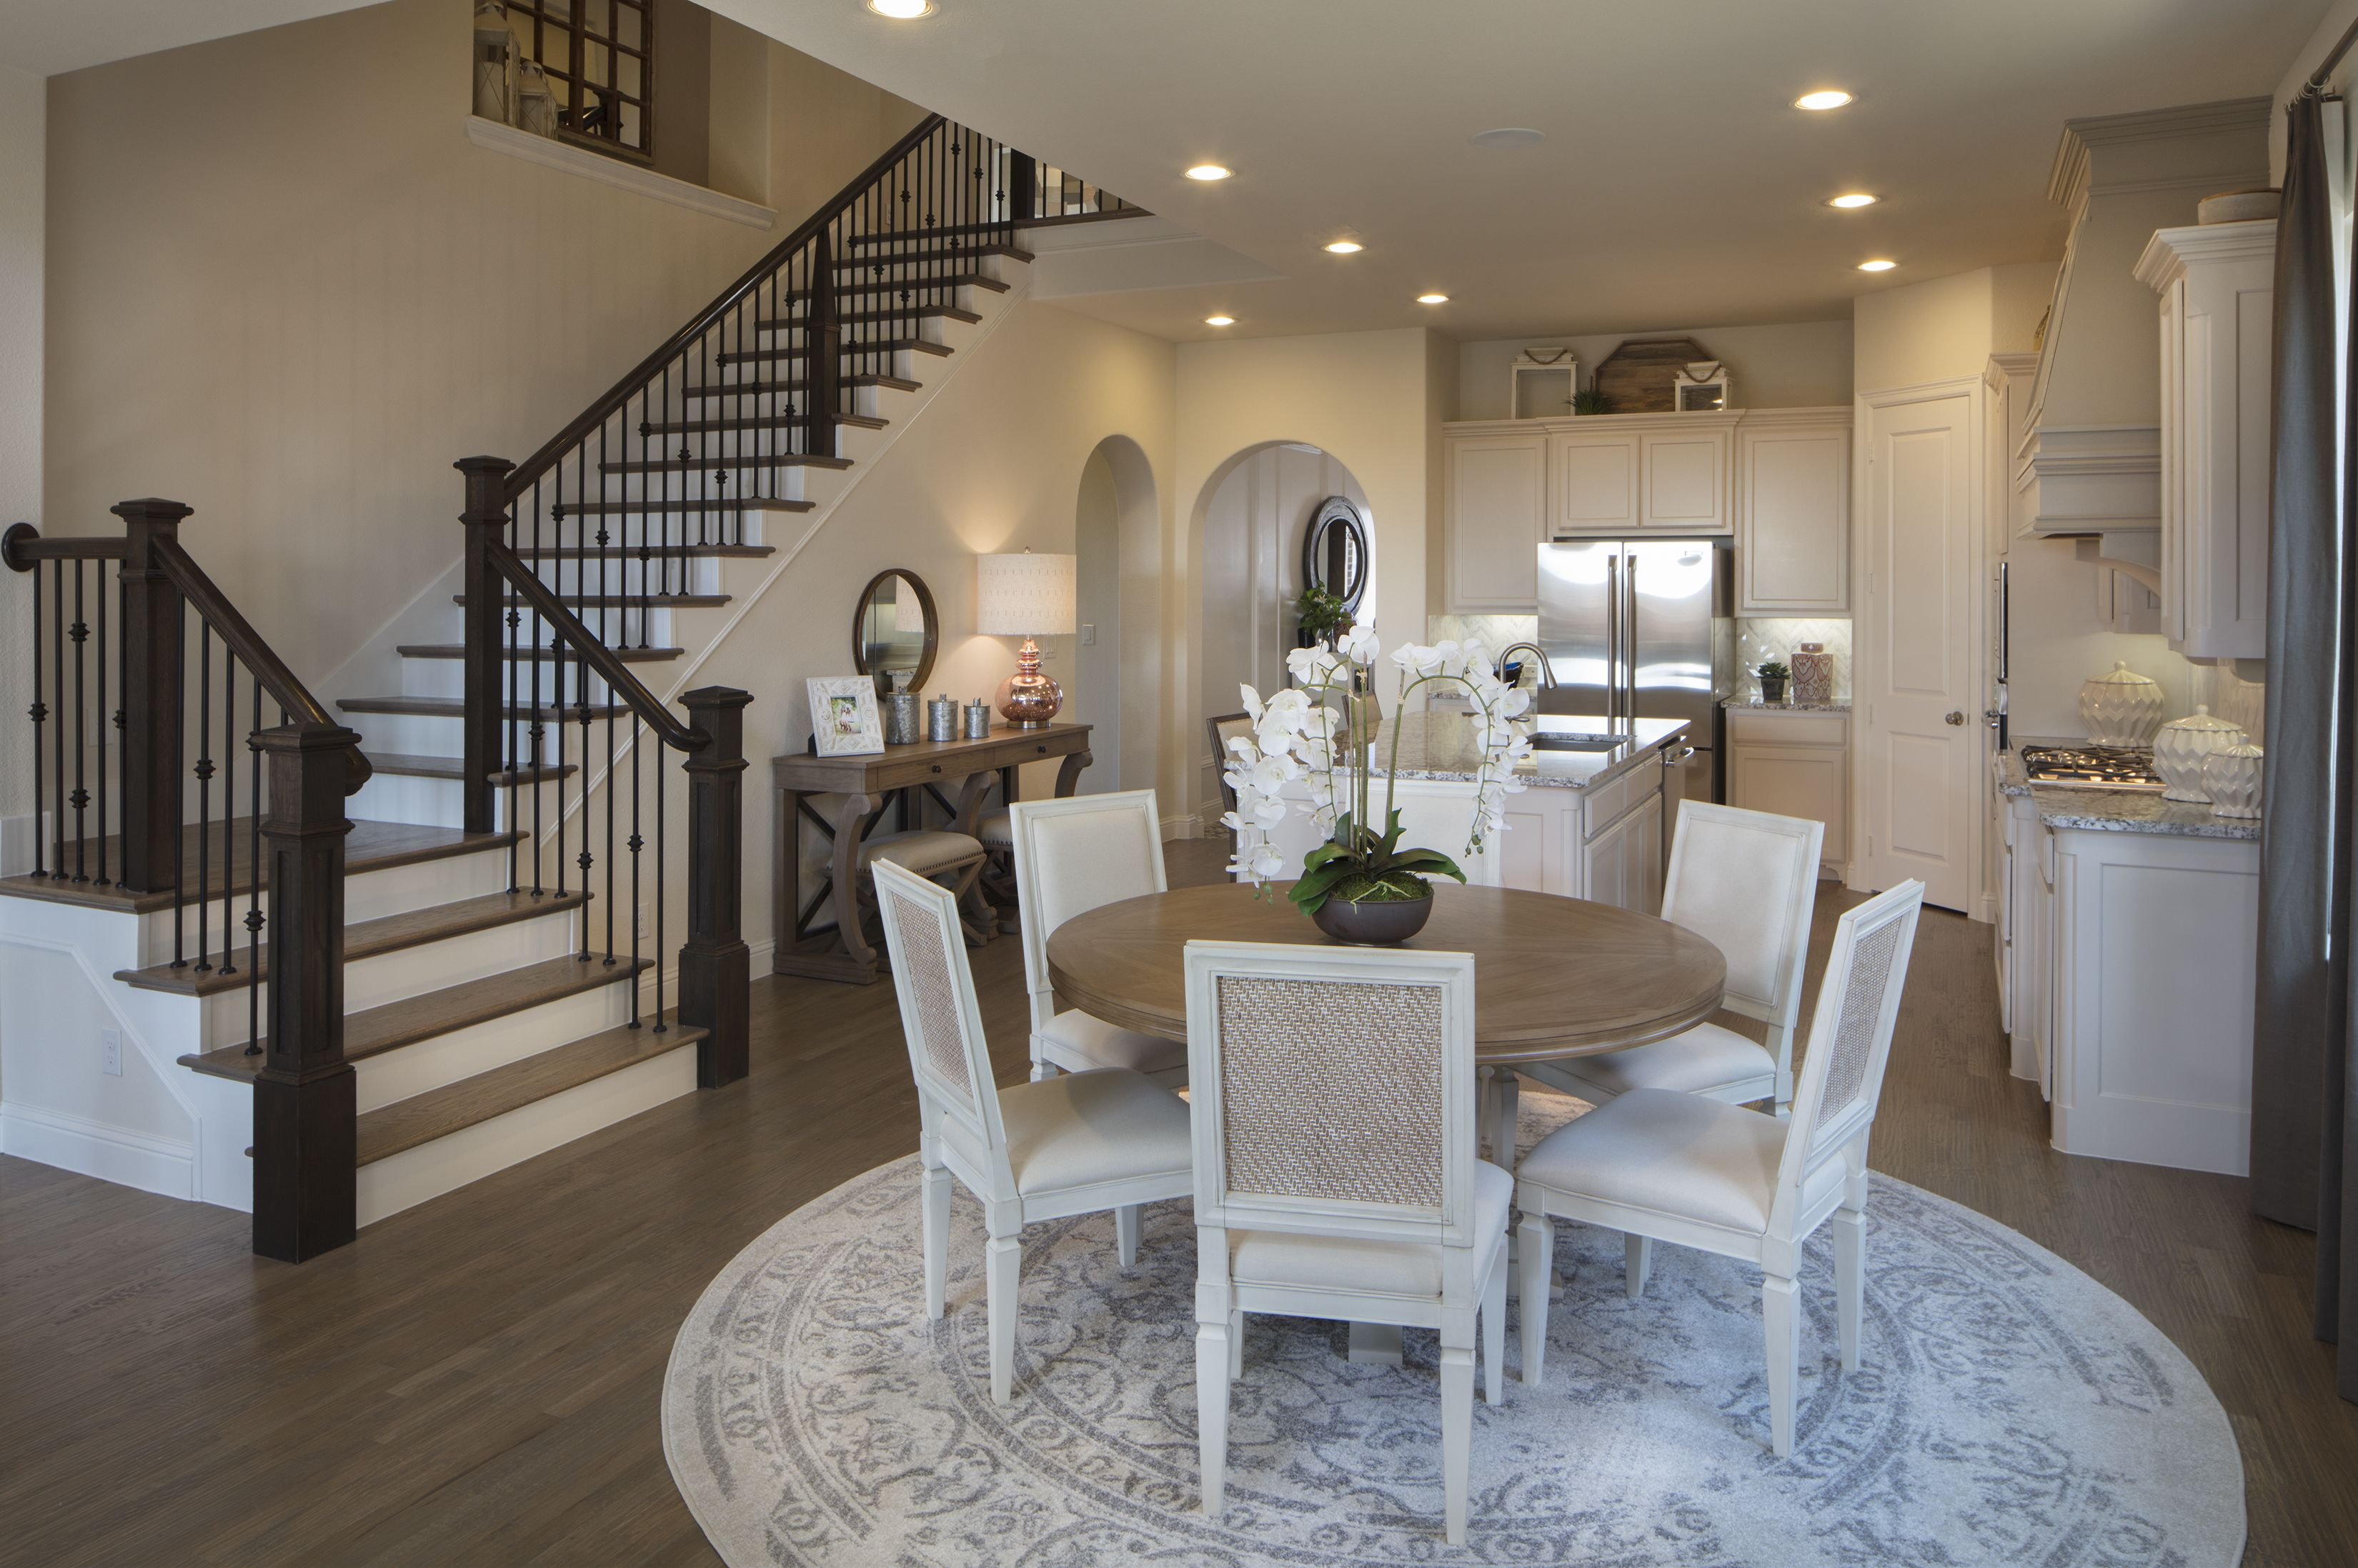 Step Into Stylishliving Staircase Kitchen Instaliving Luxlife Newhome Dallas Diningroom Breakfast Nook Table Home New Homes